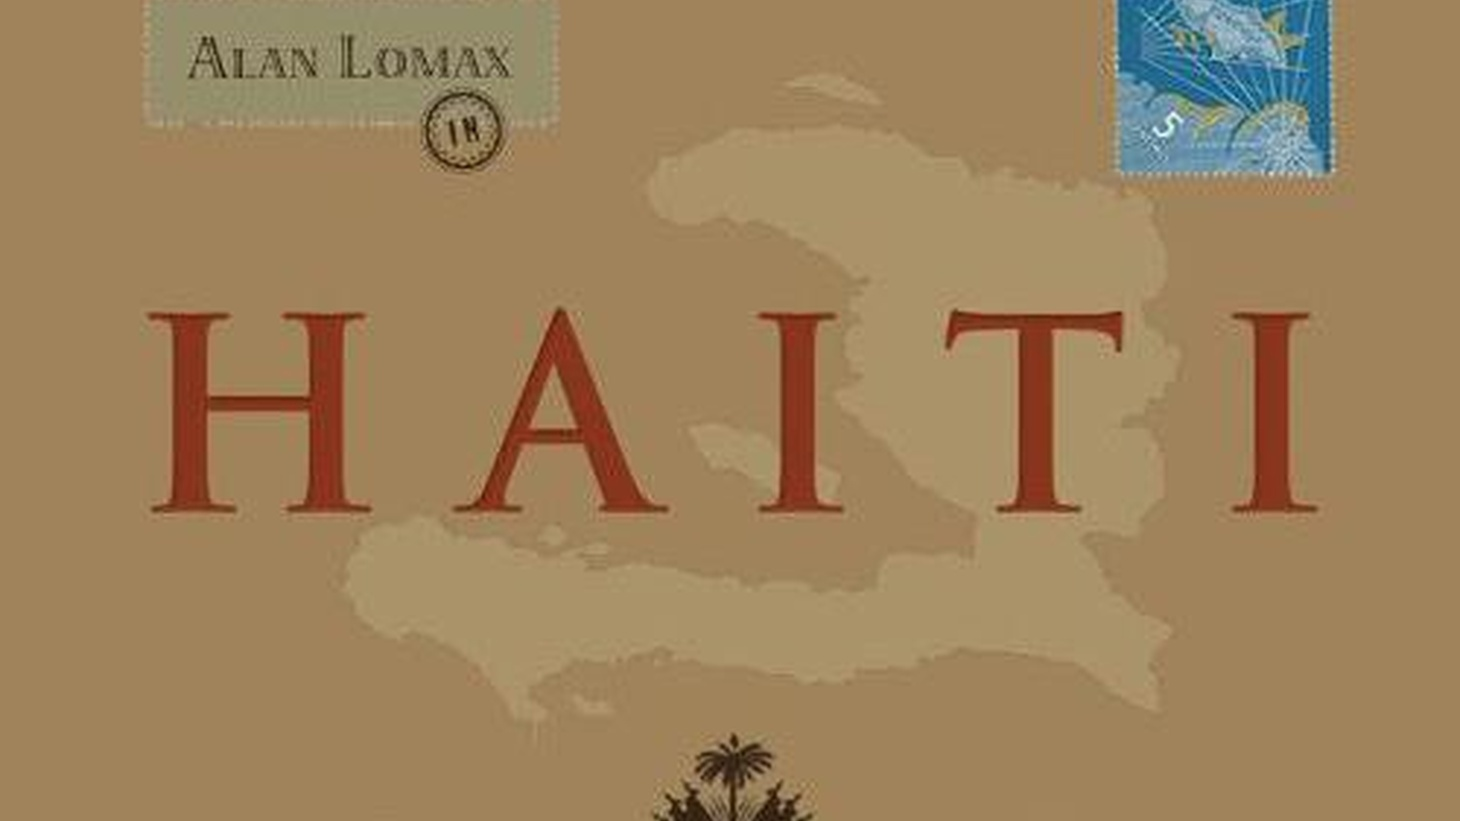 In 1936, ethnomusicologist Alan Lomax stepped off of a Colombian steamship and onto Haitian soil. Only 21 years old, the young Lomax carried 155 pounds of luggage and special recording equipment. He was on a mission to capture the music and cultural sounds specific to that Caribbean Island. It had only been two years since the US had pulled out of Haiti, following a 15-year occupation. Alan Lomax wanted to document the aural experience of the island during this time of transition. The result of his work was over 1,500 recorded items, with more than 50 hours of music and film footage. This valuable resource has been sitting in Library of Congress for over 70 years, unavailable to the public… until now...